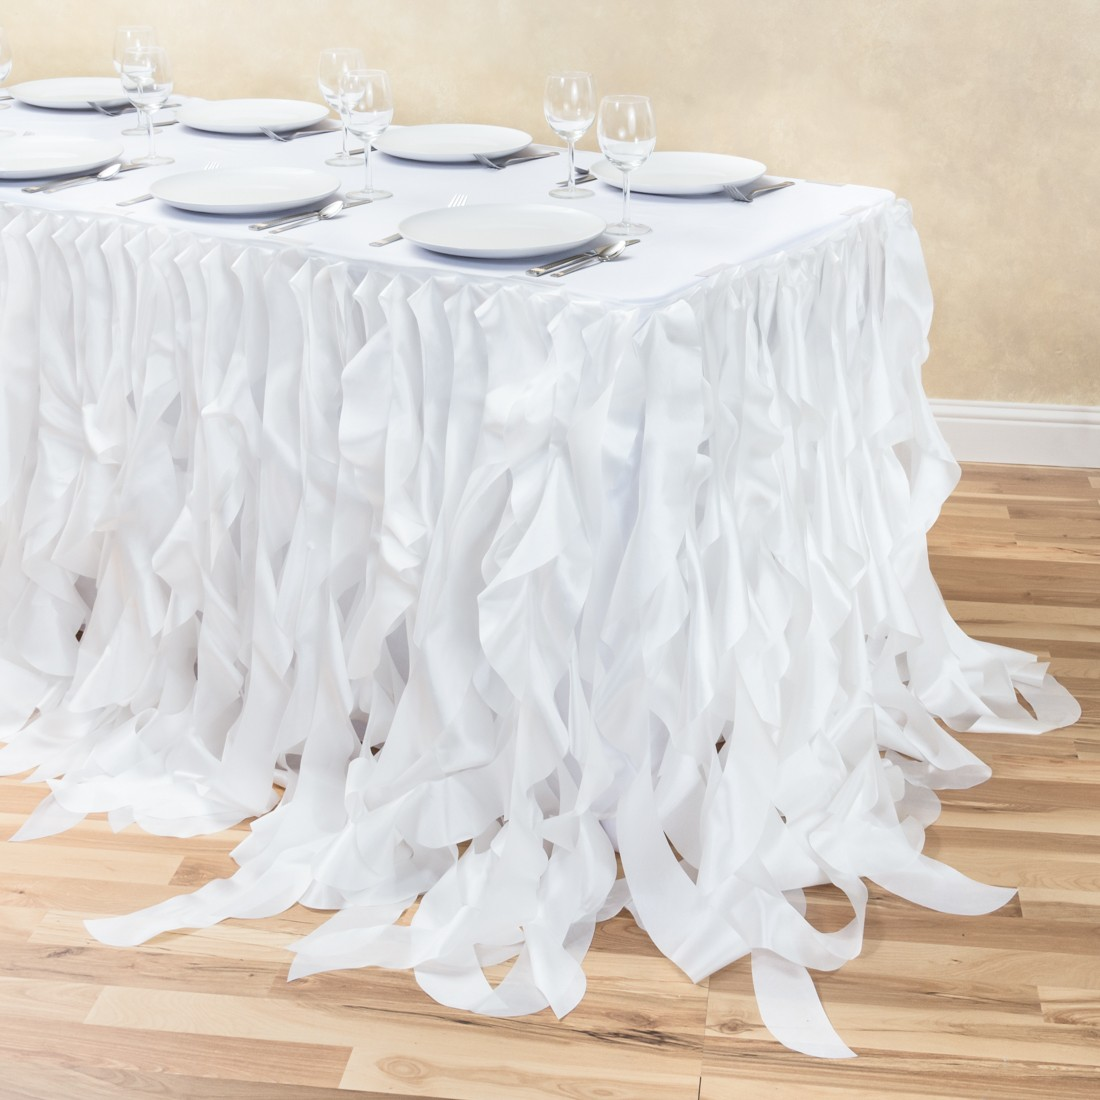 Table Cloth Hire